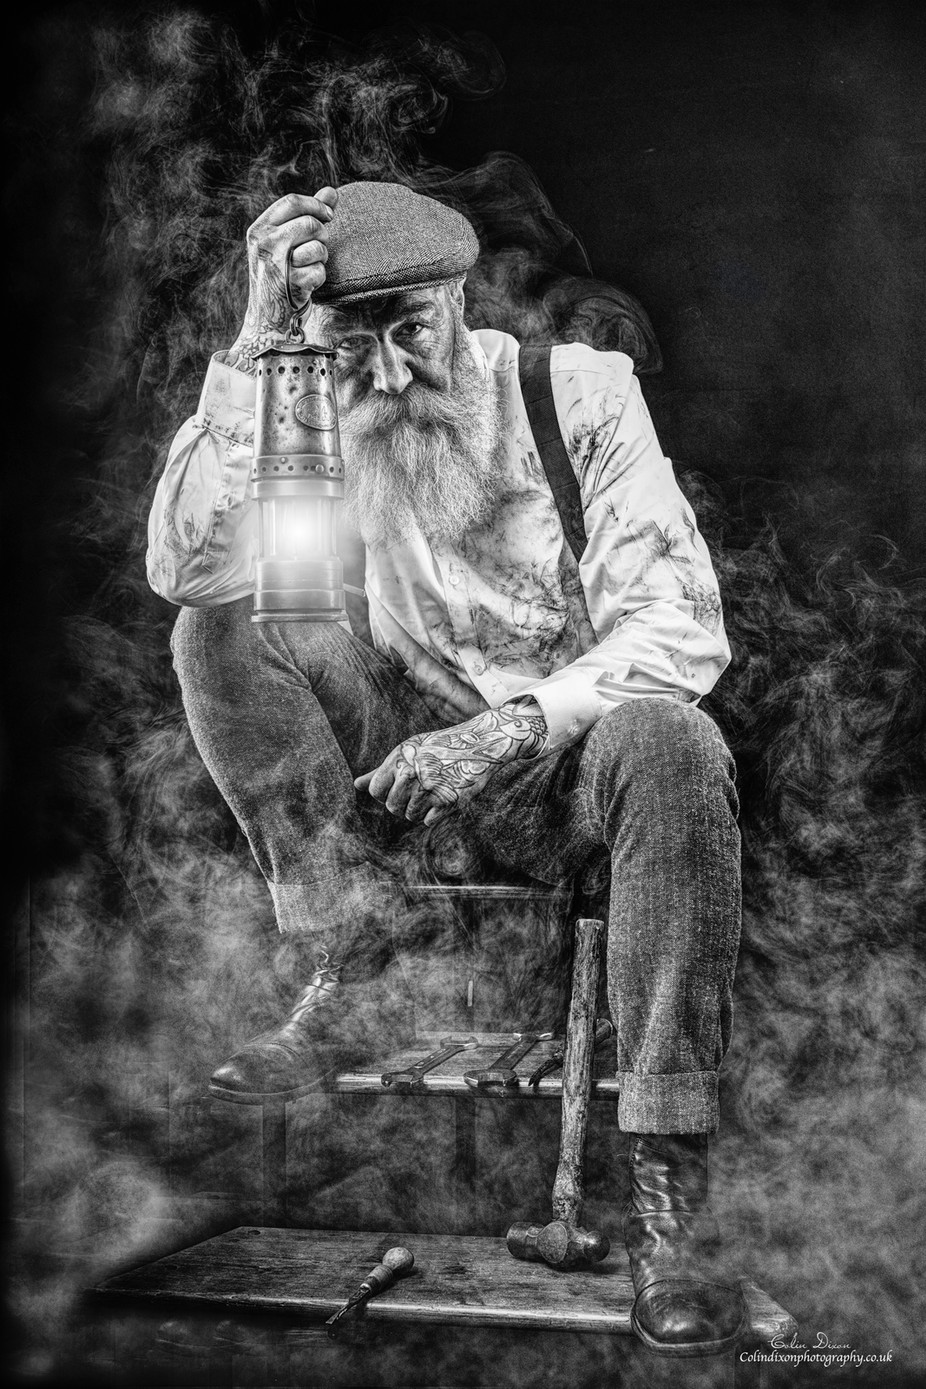 Pip the Miner 3 by ColinDixonPhotography - Black And White Compositions Photo Contest vol3